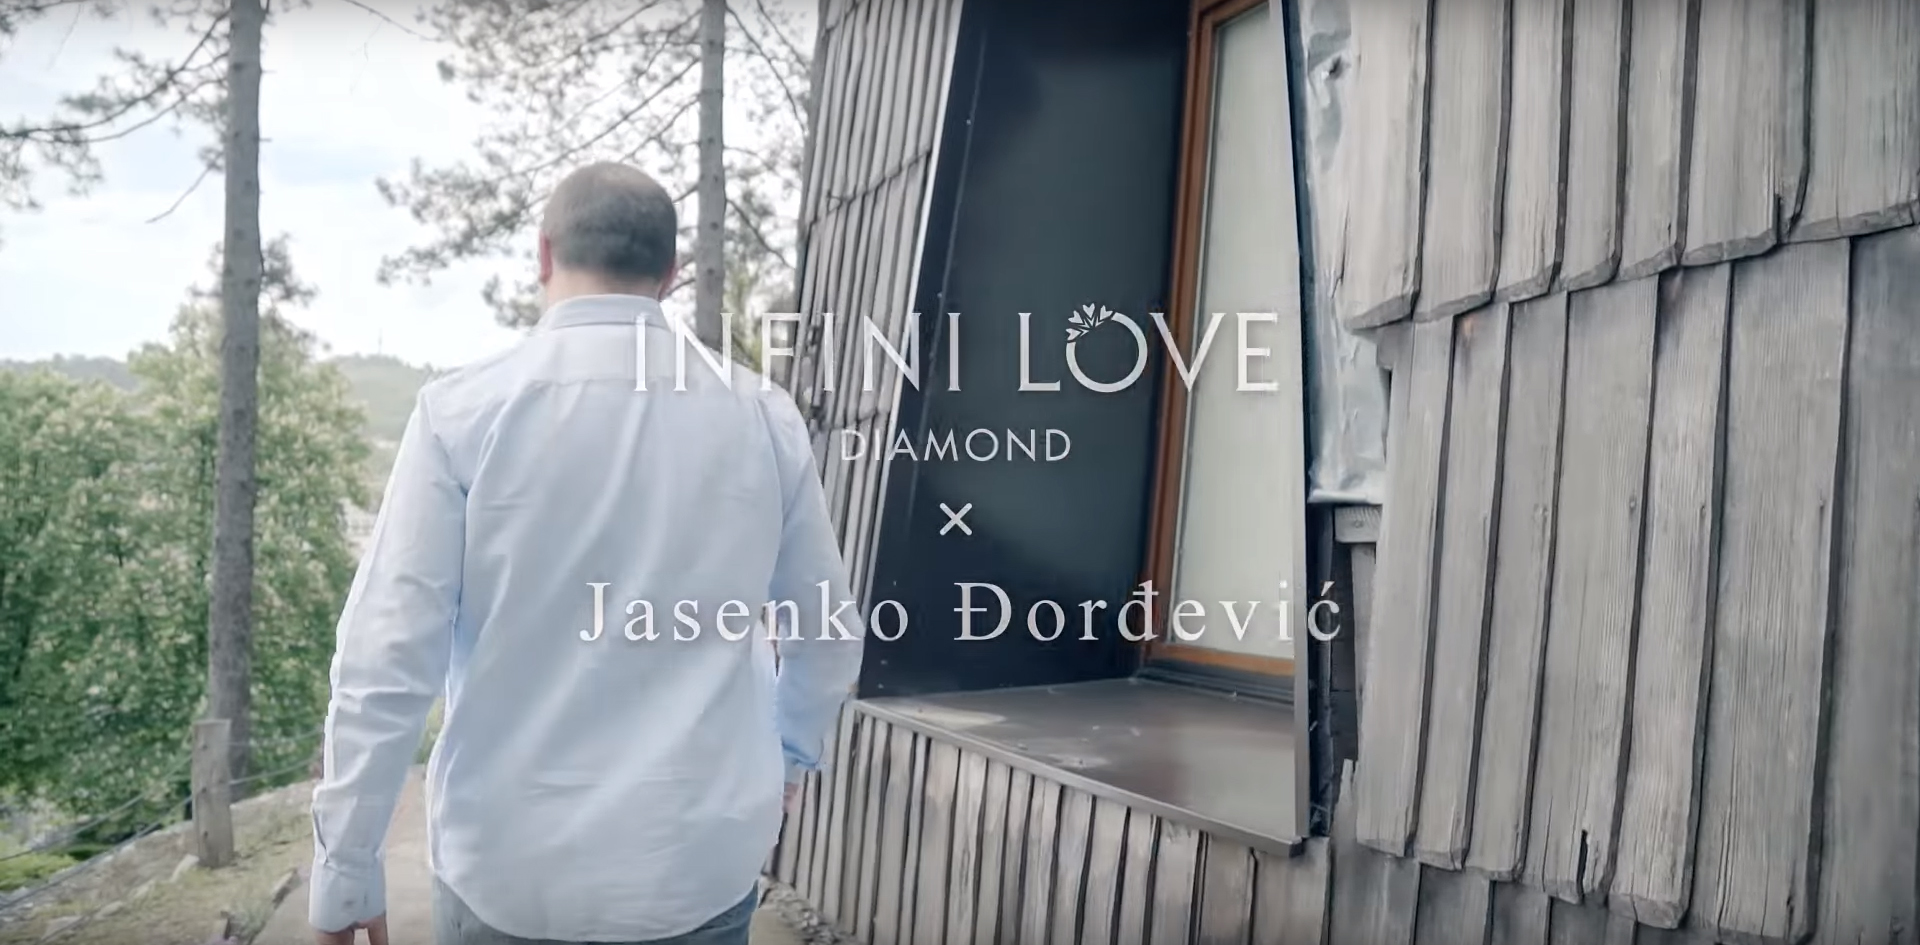 Jasenko Dordevic on commercial